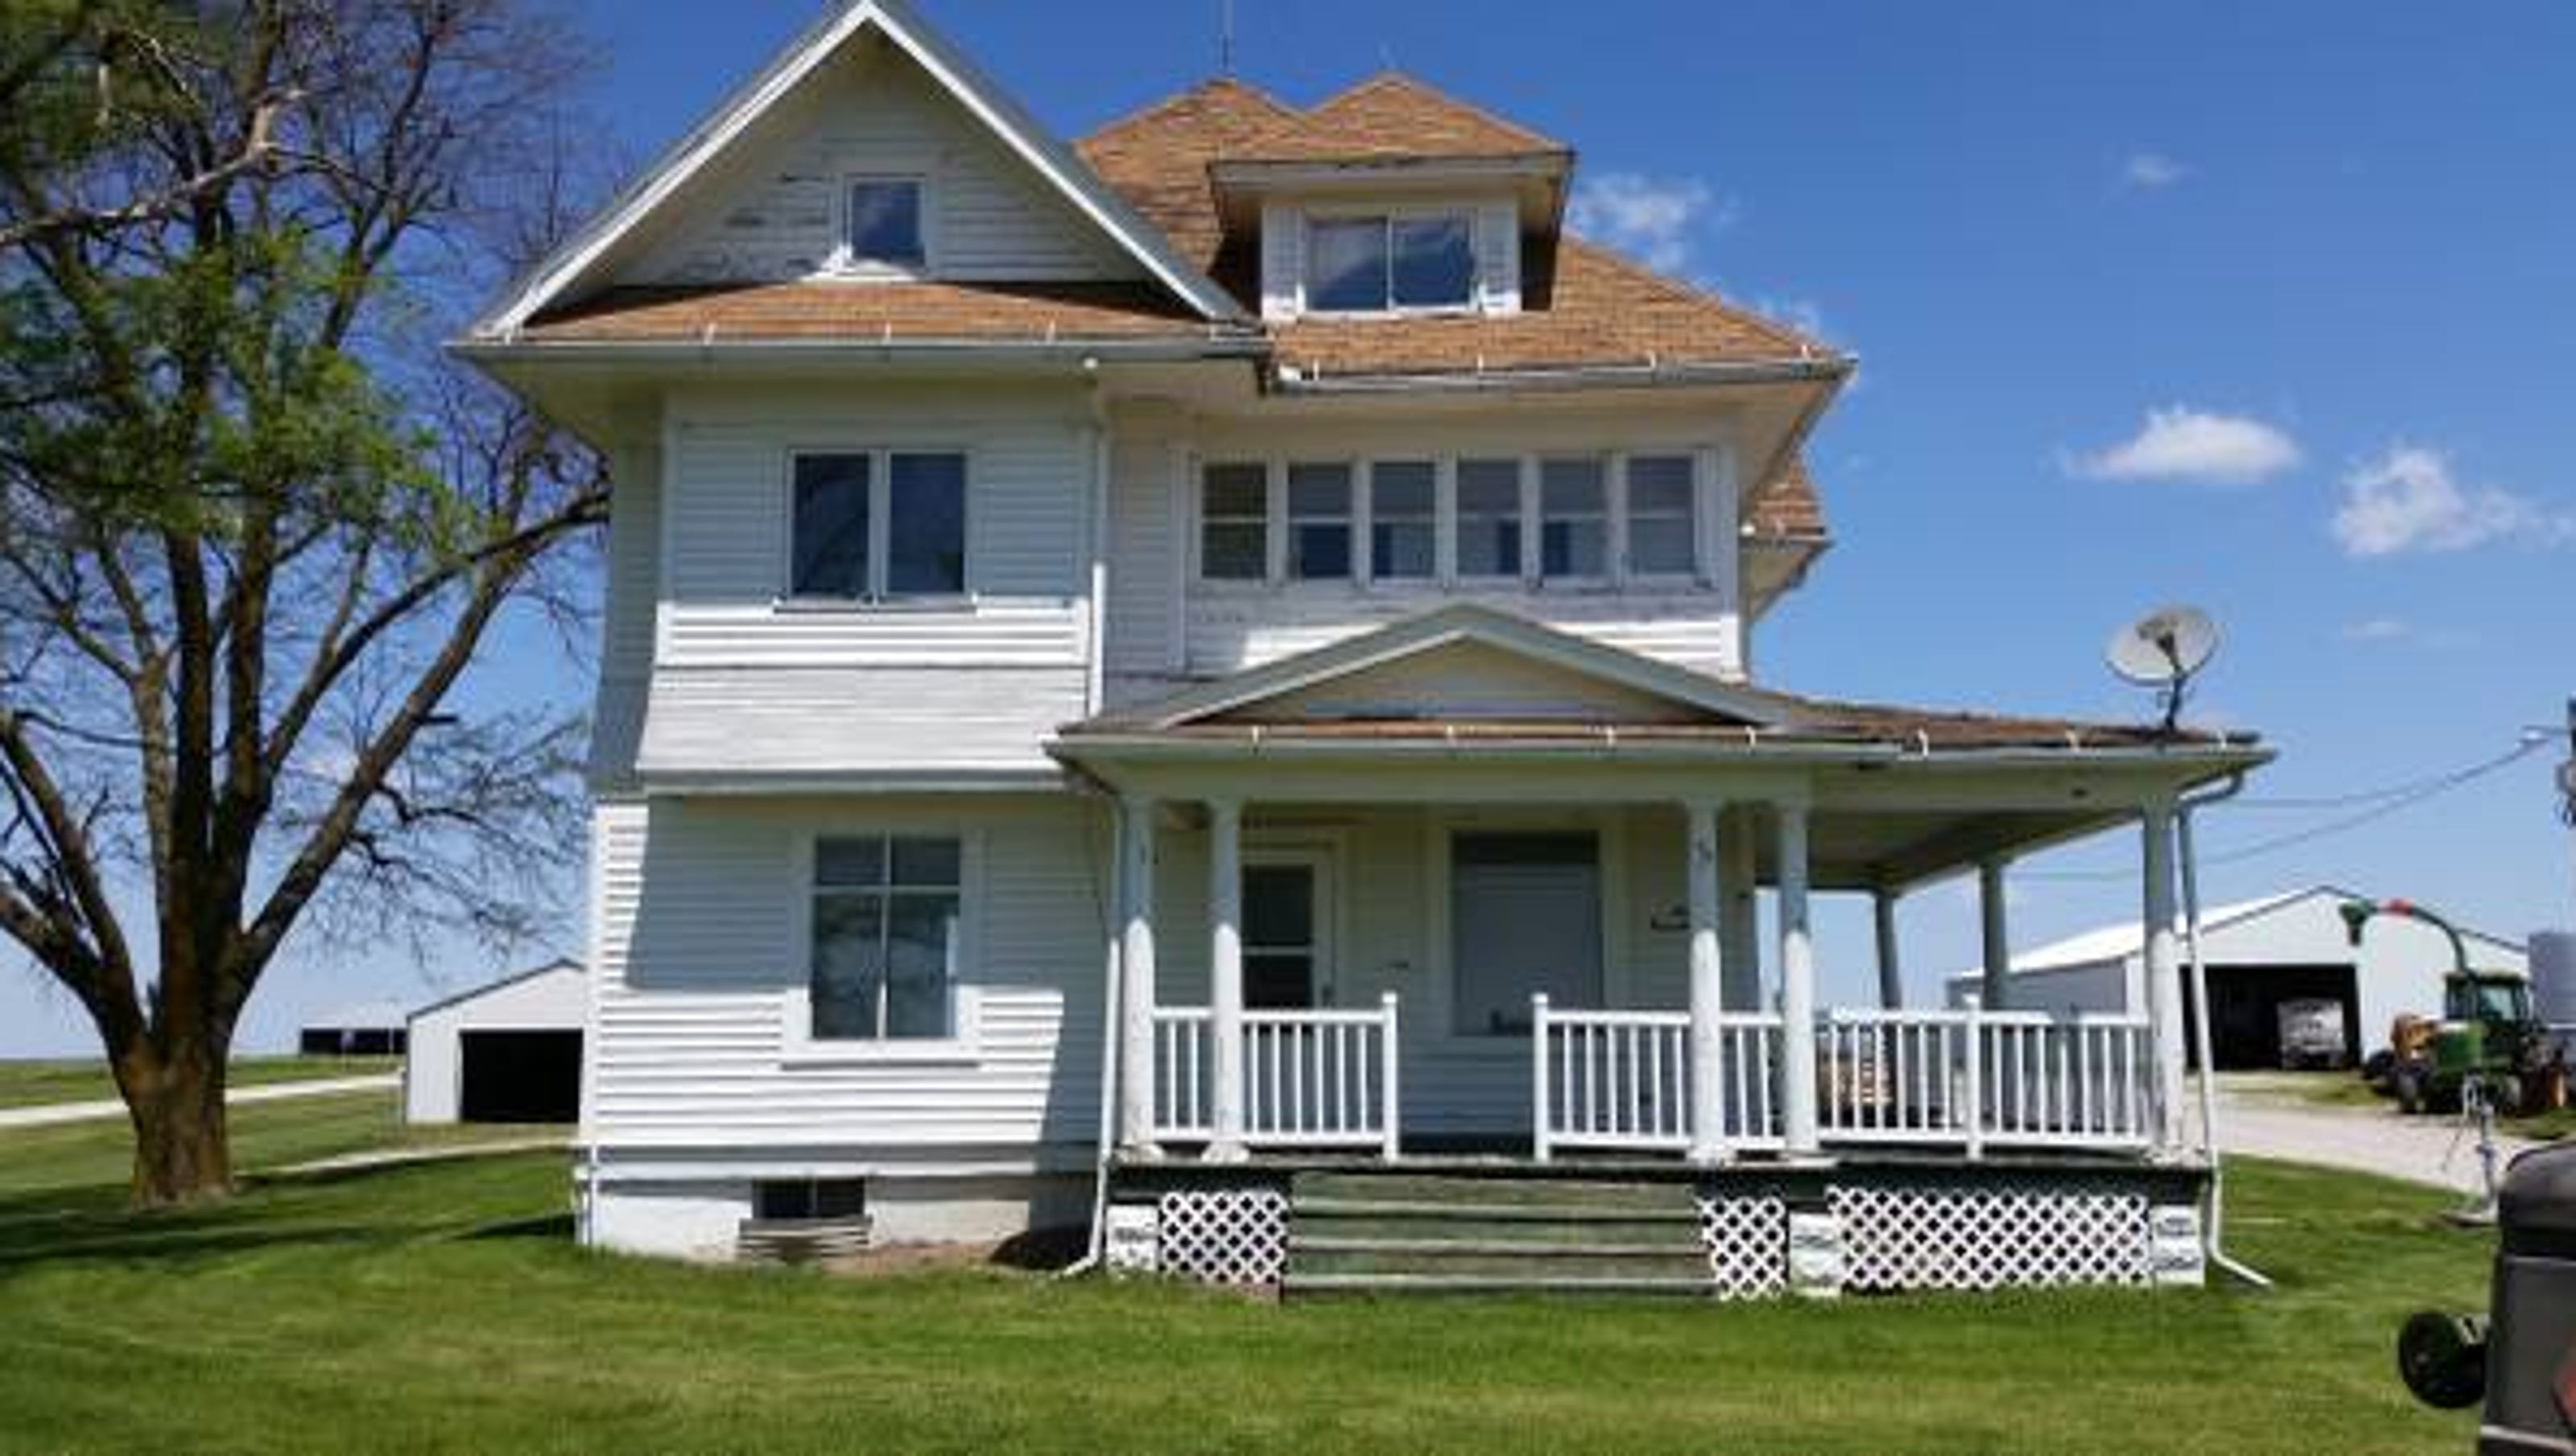 Iowa Farmhouse Offered For Free On Craigslist Finds A New Home